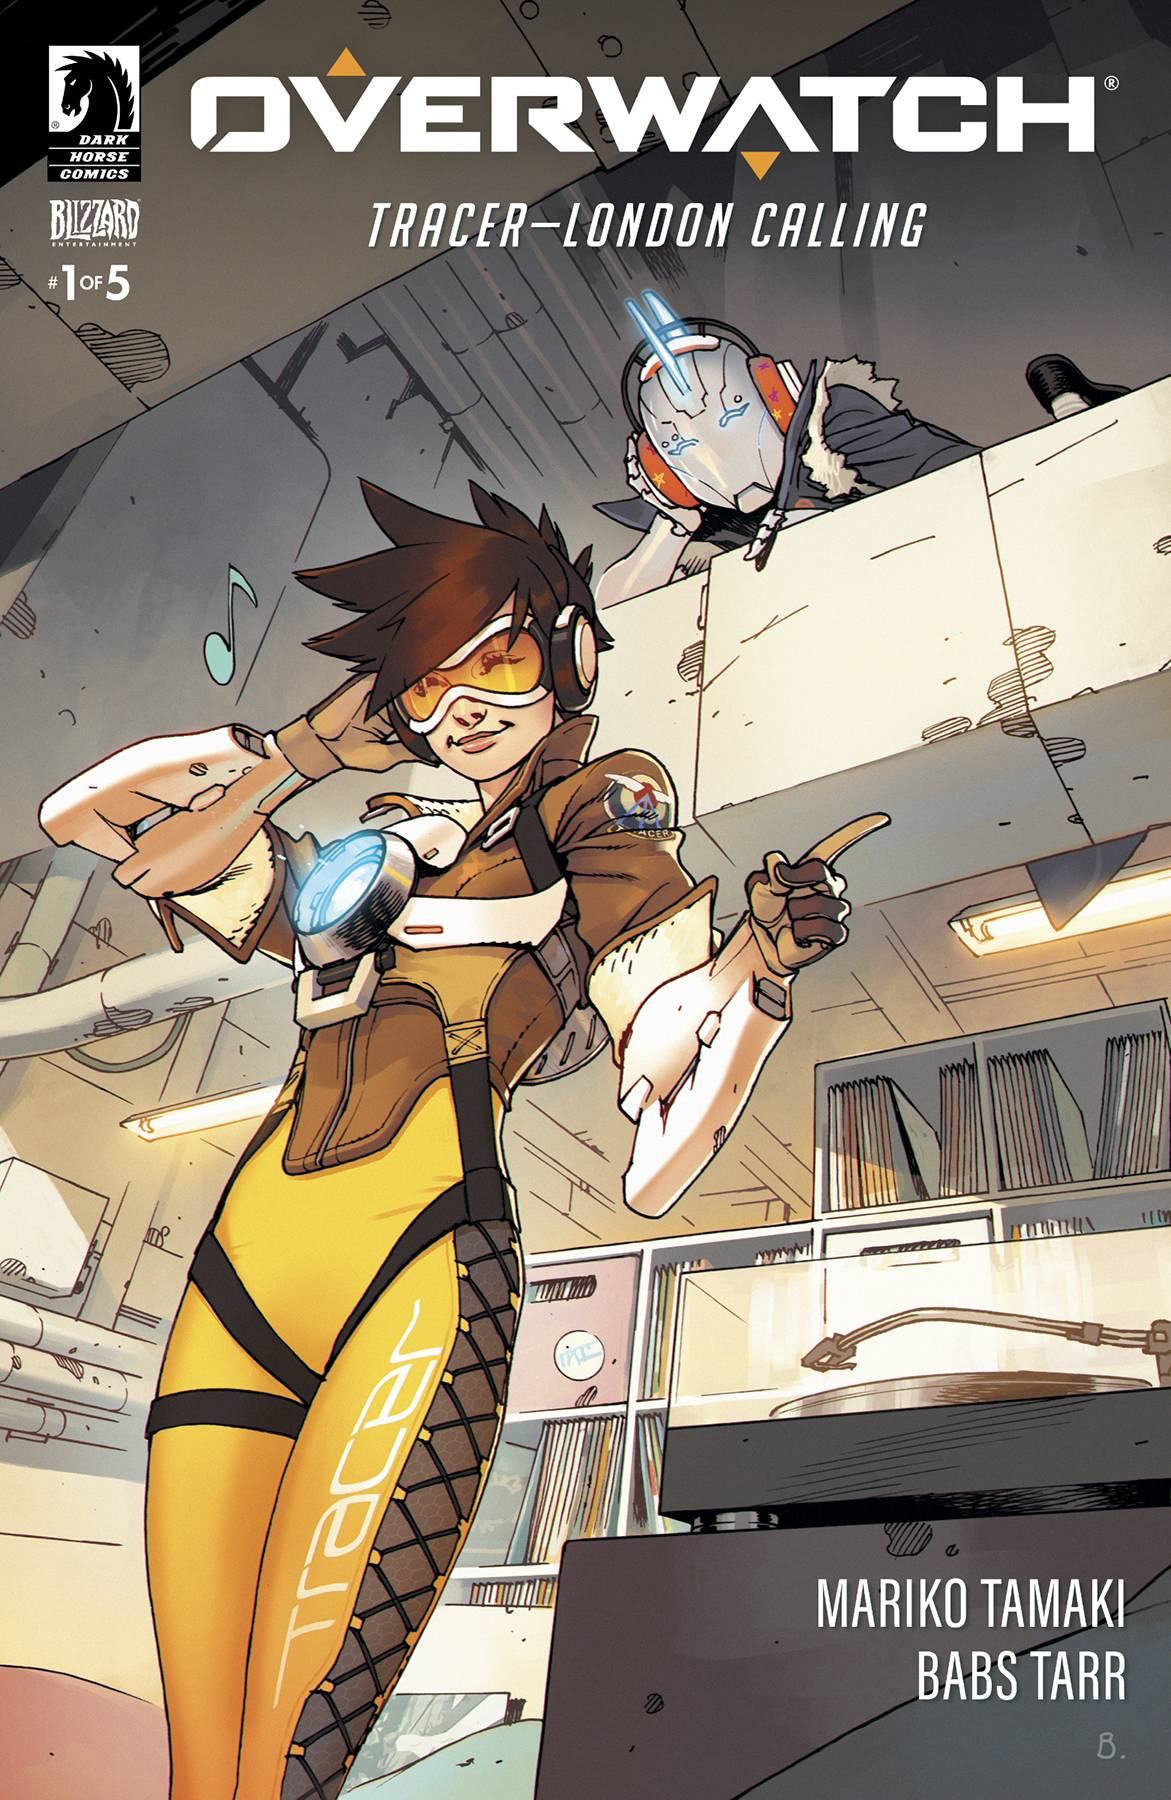 OVERWATCH TRACER-LONDON CALLING #1 (OF 5)